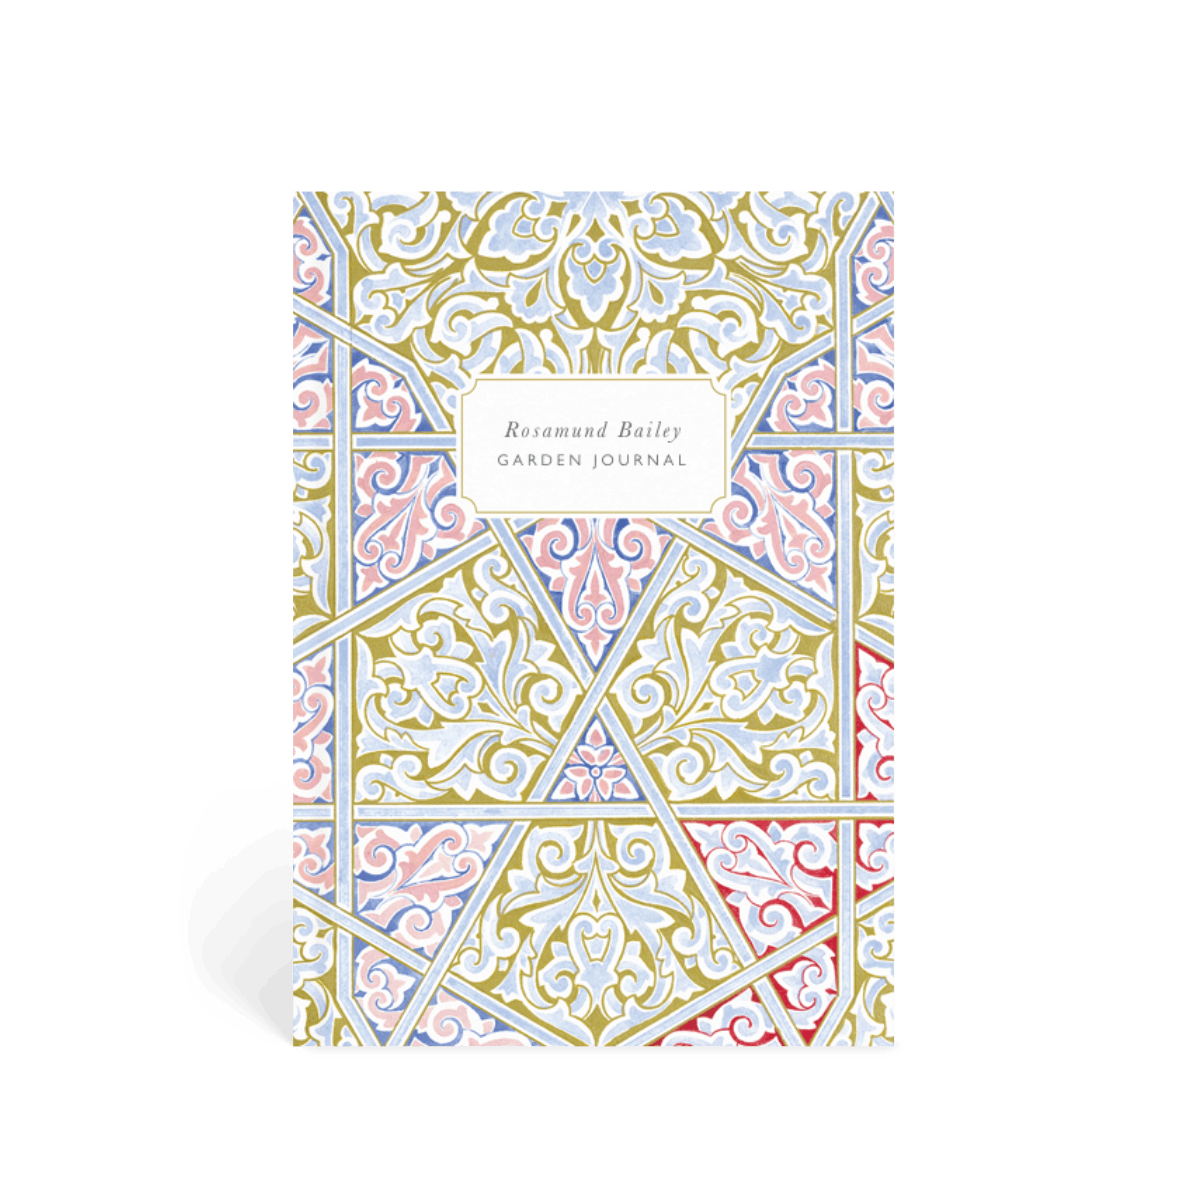 Https%3a%2f%2fwww.papier.com%2fproduct image%2f55269%2f25%2fpastel filigree 13276 front 1542299292.png?ixlib=rb 1.1